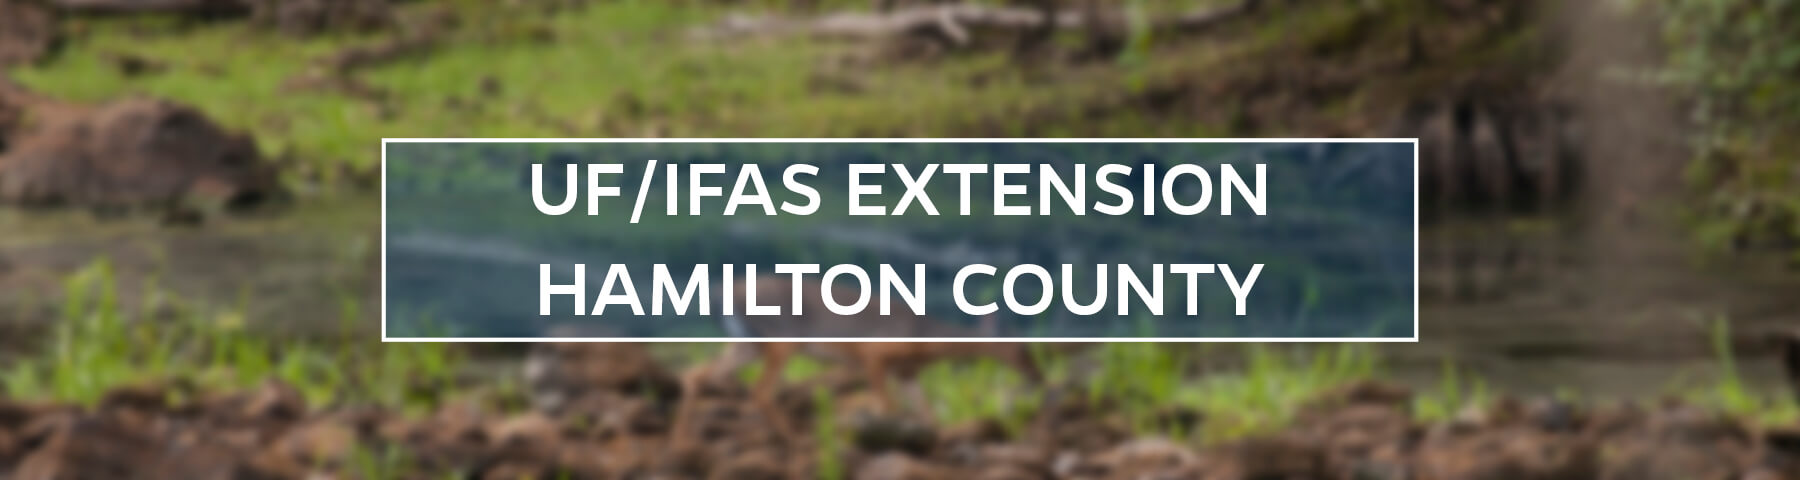 UF/IFAS Extension Hamilton County